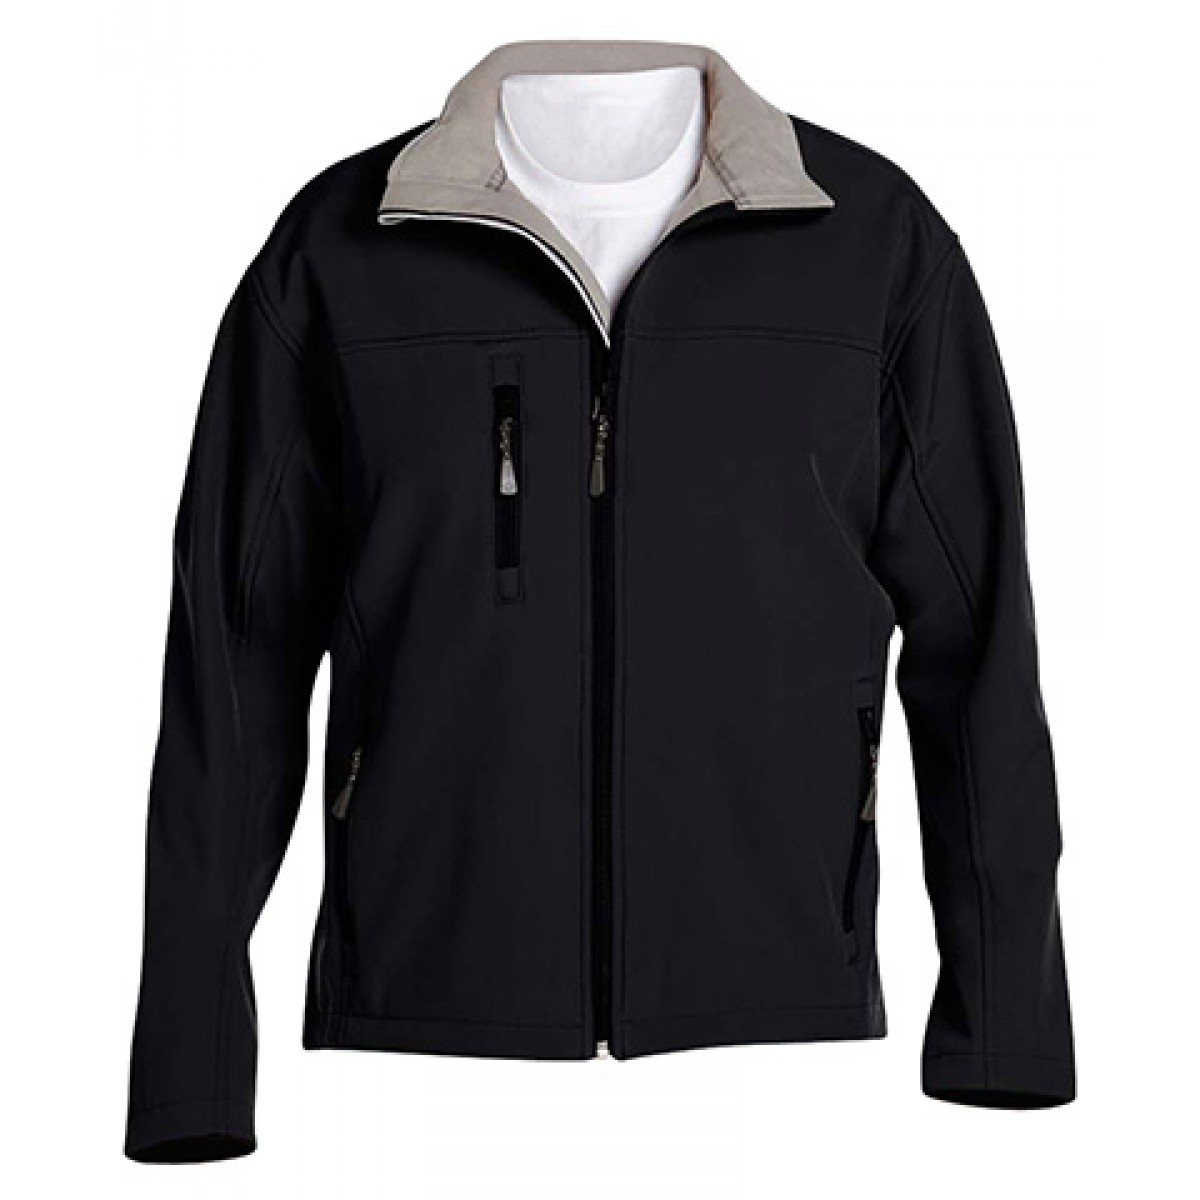 Men's Soft Shell Jacket-Black-3XL